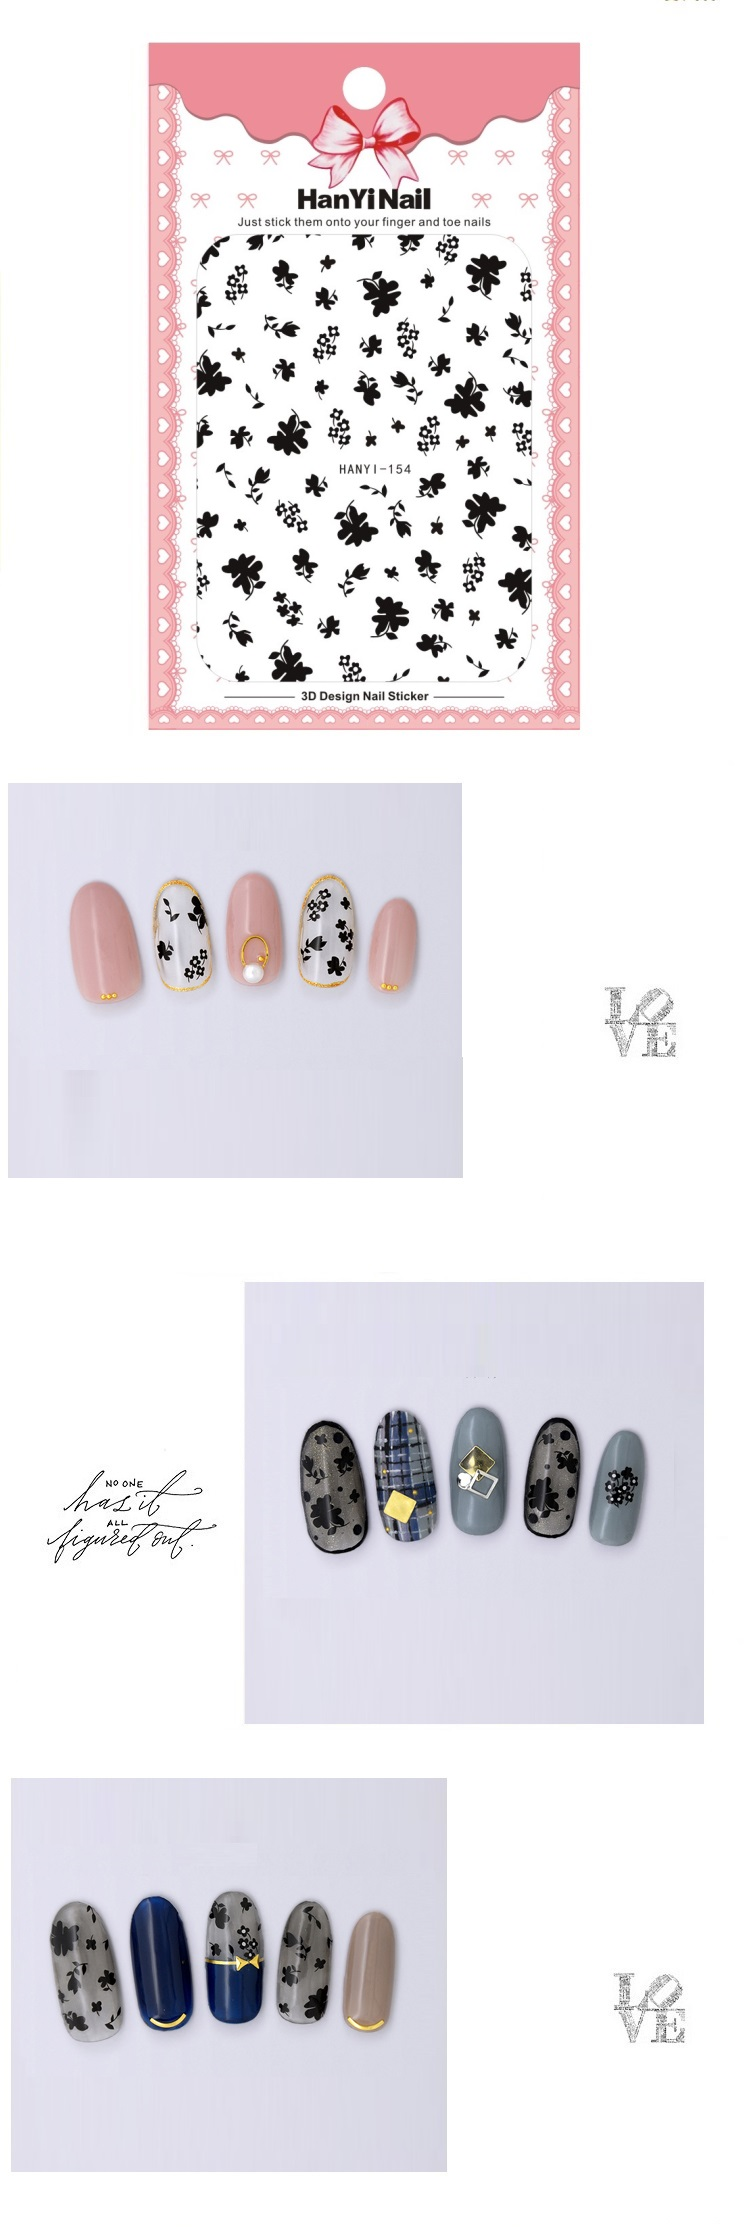 Related images of cc lv c logo stickers decals nails custom stickers 3 pcs air decal nail stiker natal natal kartun desain nail sticker